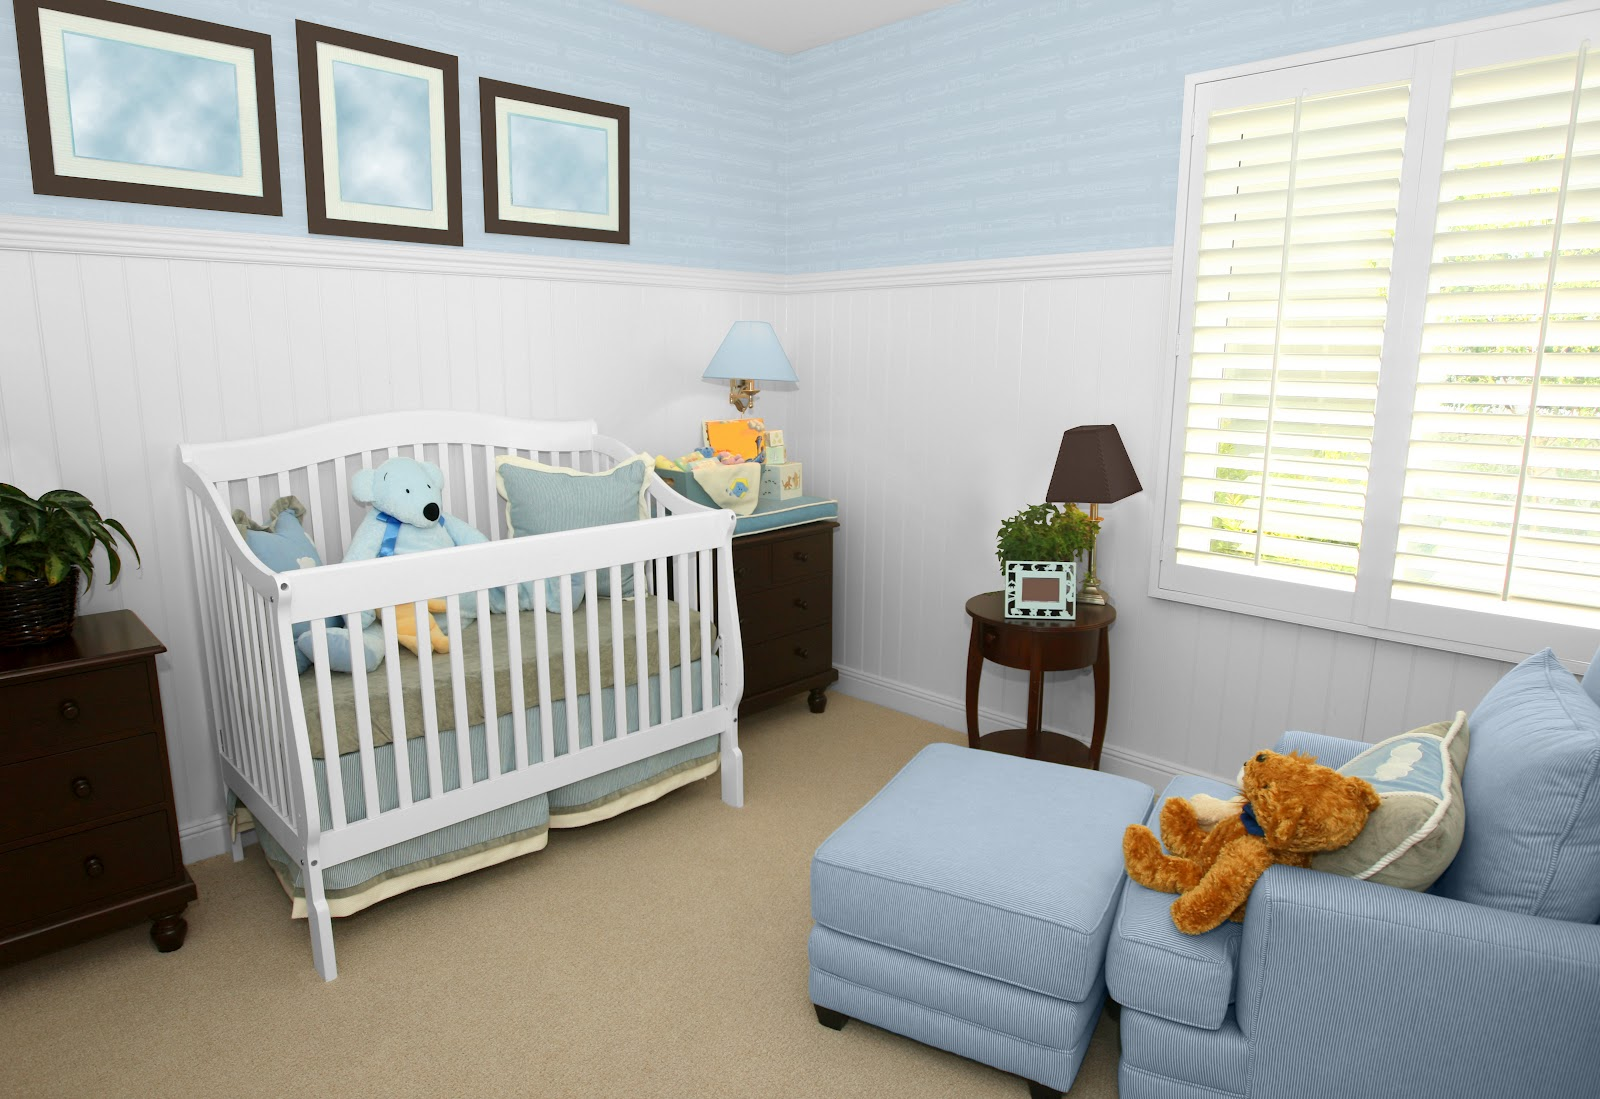 Baby Rooms Top 10 Baby Nursery Room Colors And Decorating Ideas